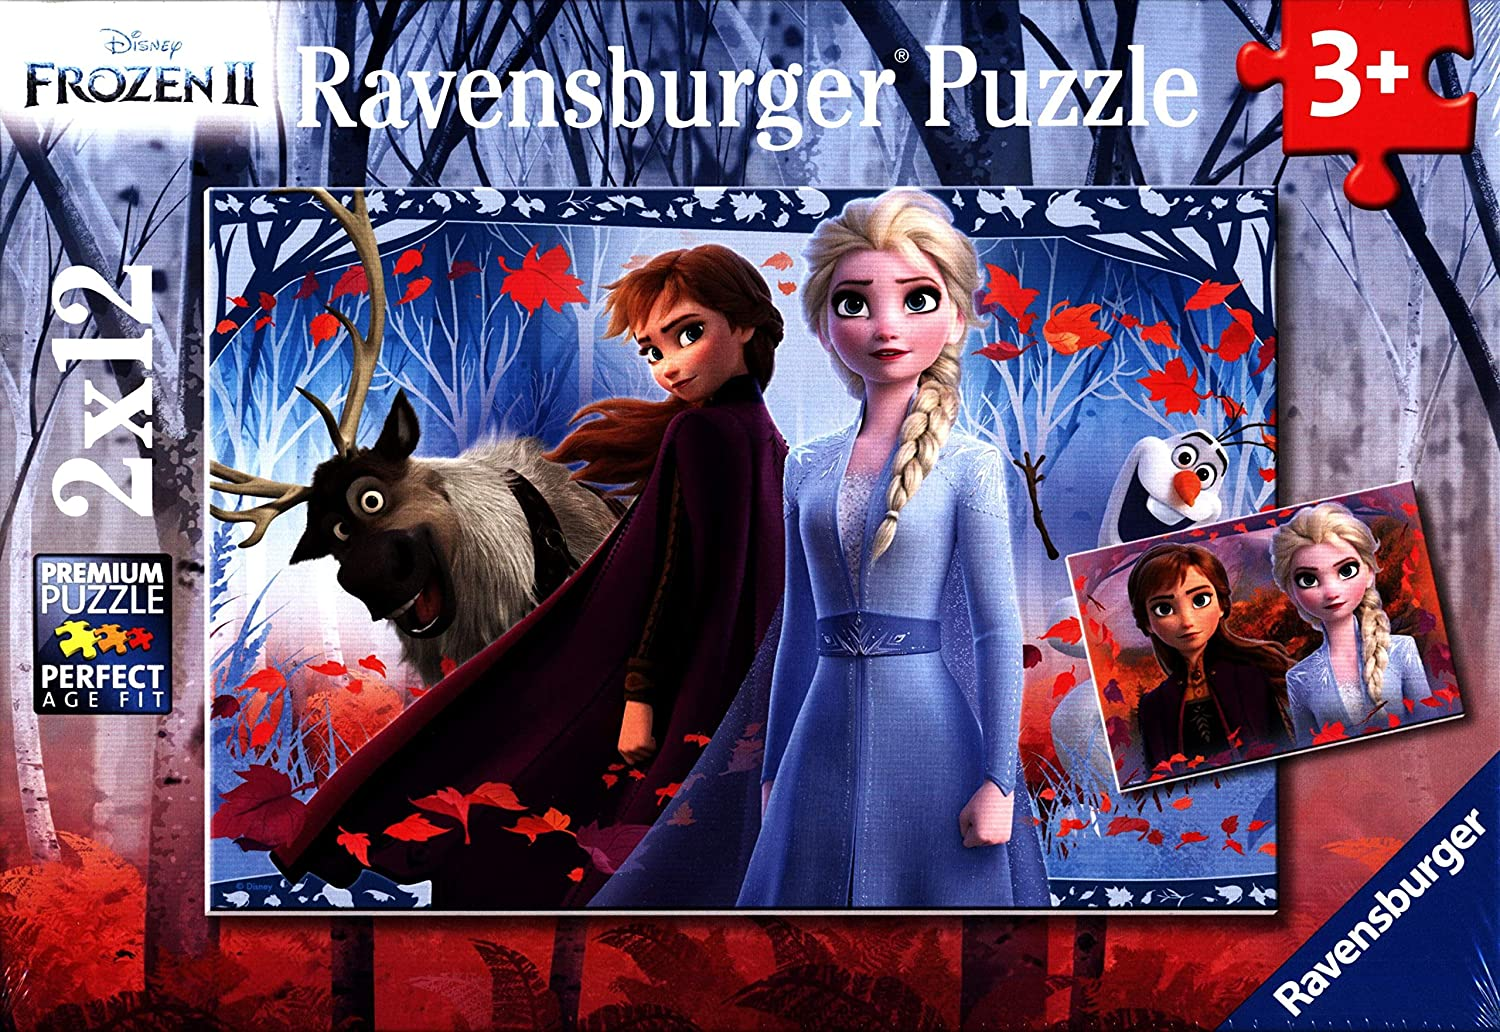 Ravensburger - Frozen 2 Journey to the Unknown Jigsaw Puzzle 2x12 pieces 3+